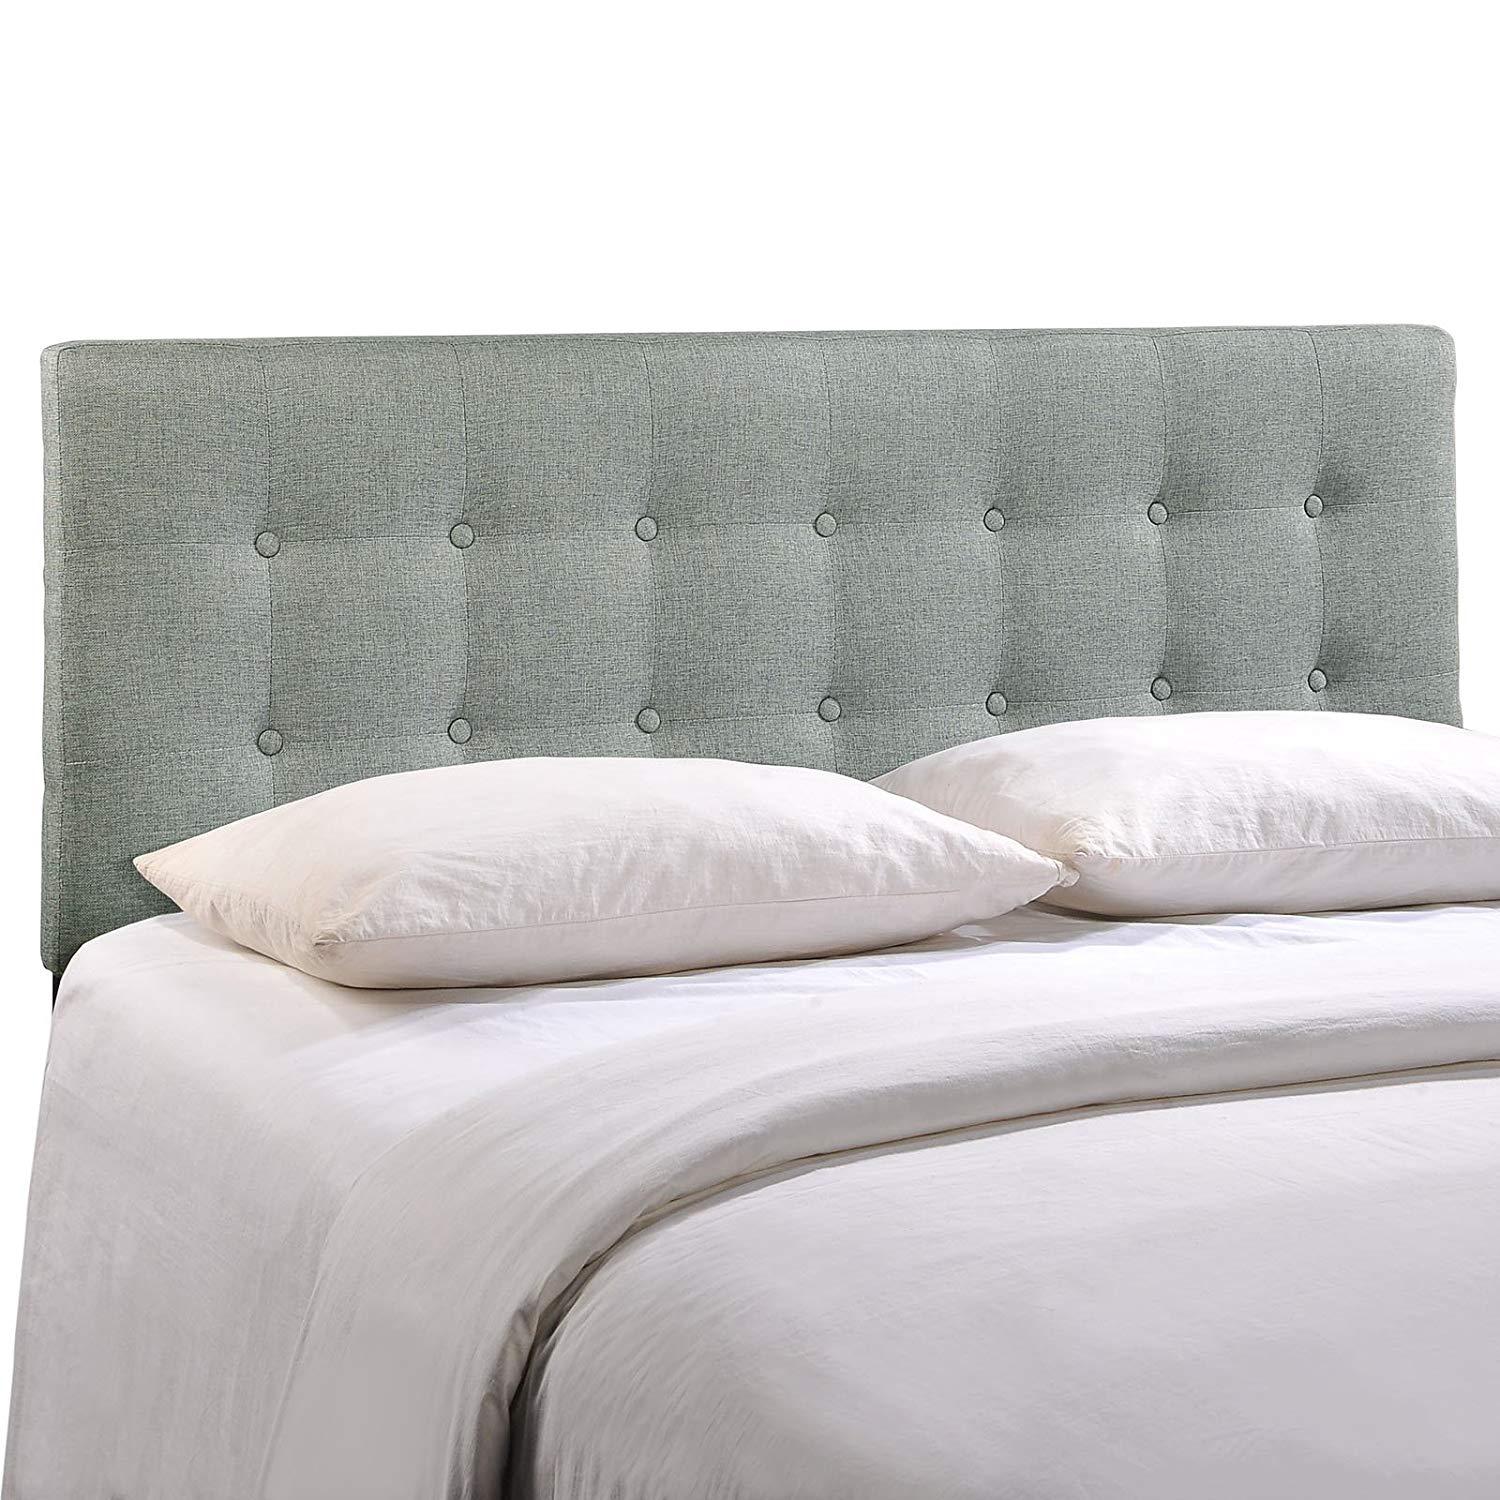 Traveller Location - Modway MOD-5170-GRY Emily Upholstered Tufted Button Fabric  Queen Headboard Size in Gray -